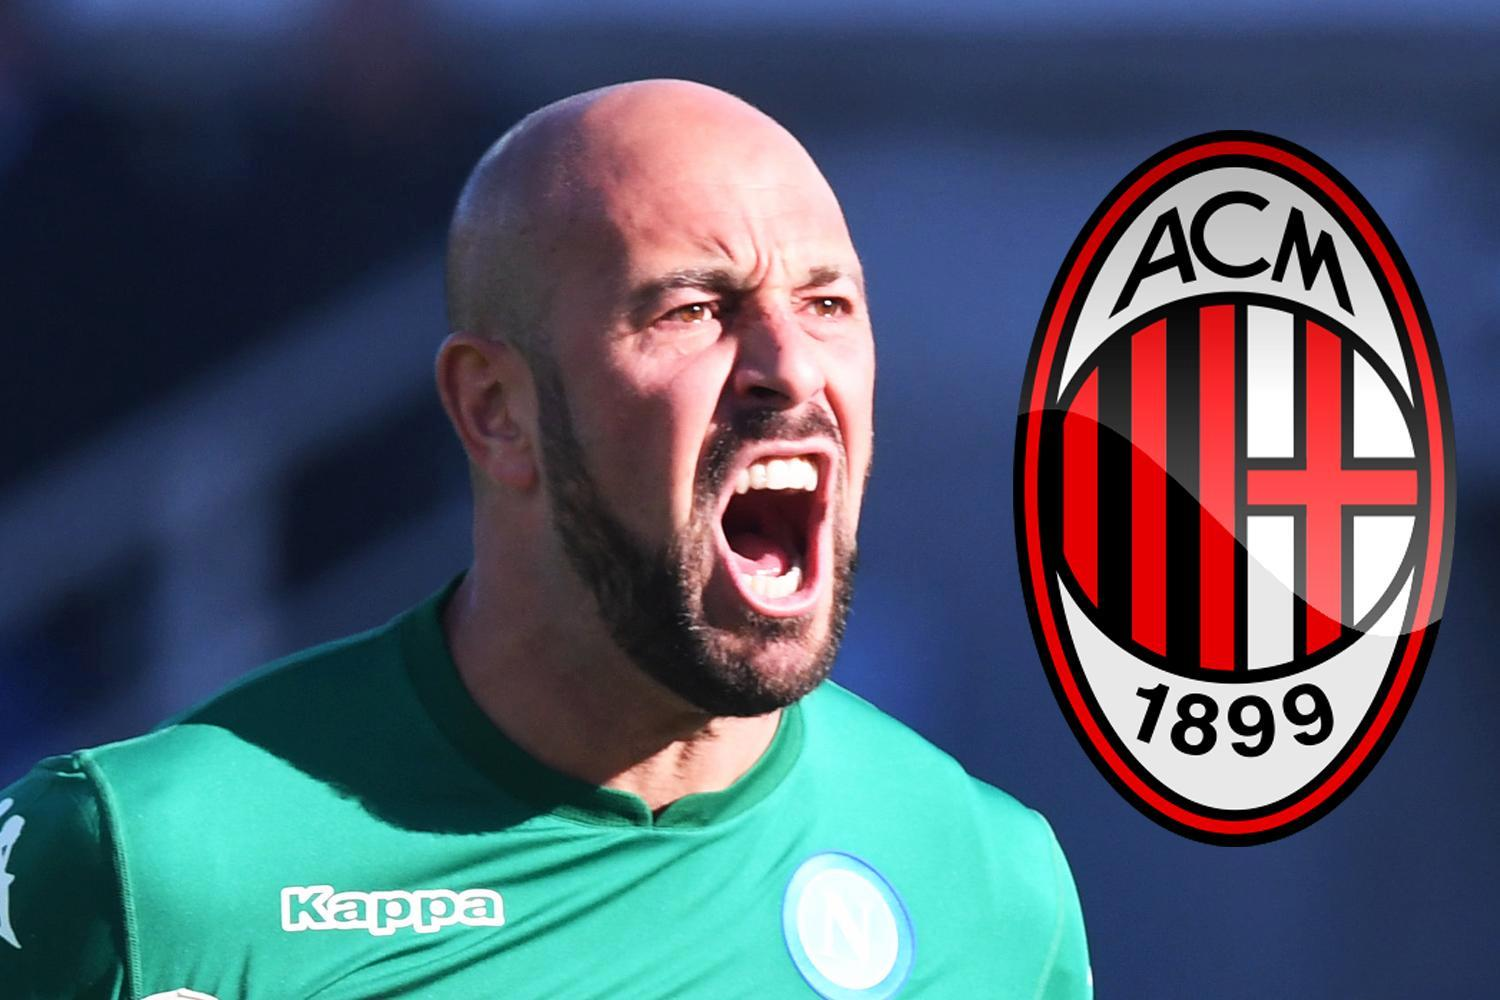 Former Liverpool and Bayern Munich goalkeeper Pepe Reina having medical at AC Milan ahead of free transfer